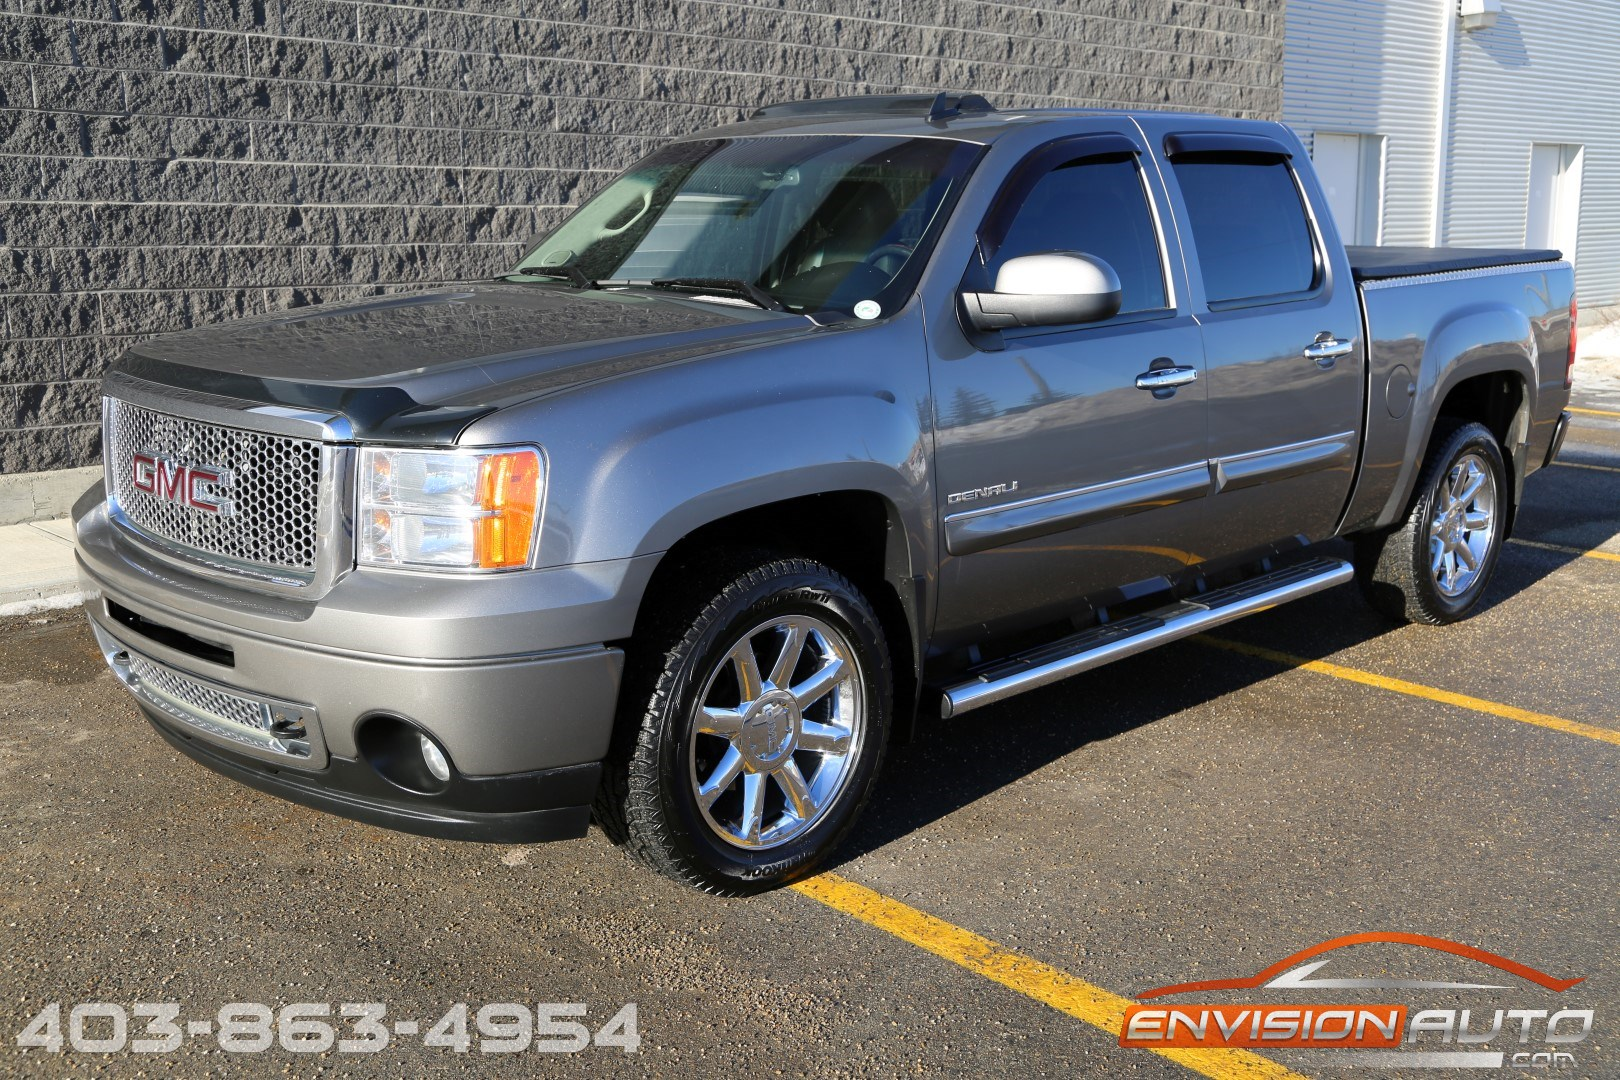 2012 gmc sierra 1500 denali awd 6 2l v8 navi heated cooled seats envision auto calgary. Black Bedroom Furniture Sets. Home Design Ideas